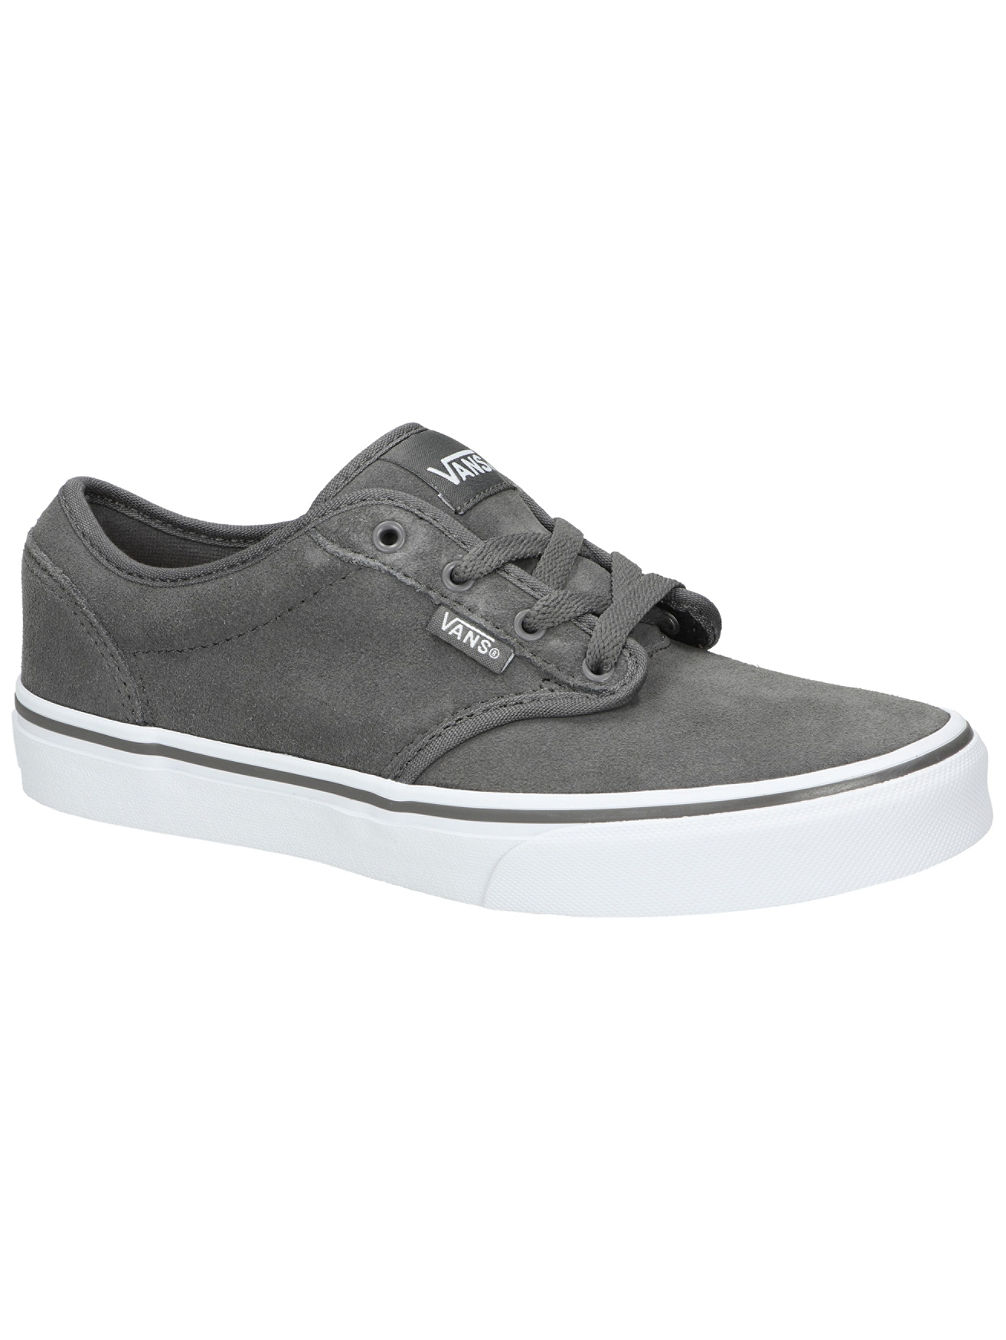 62418c5db2 Buy Vans Atwood Sneakers online at Blue Tomato